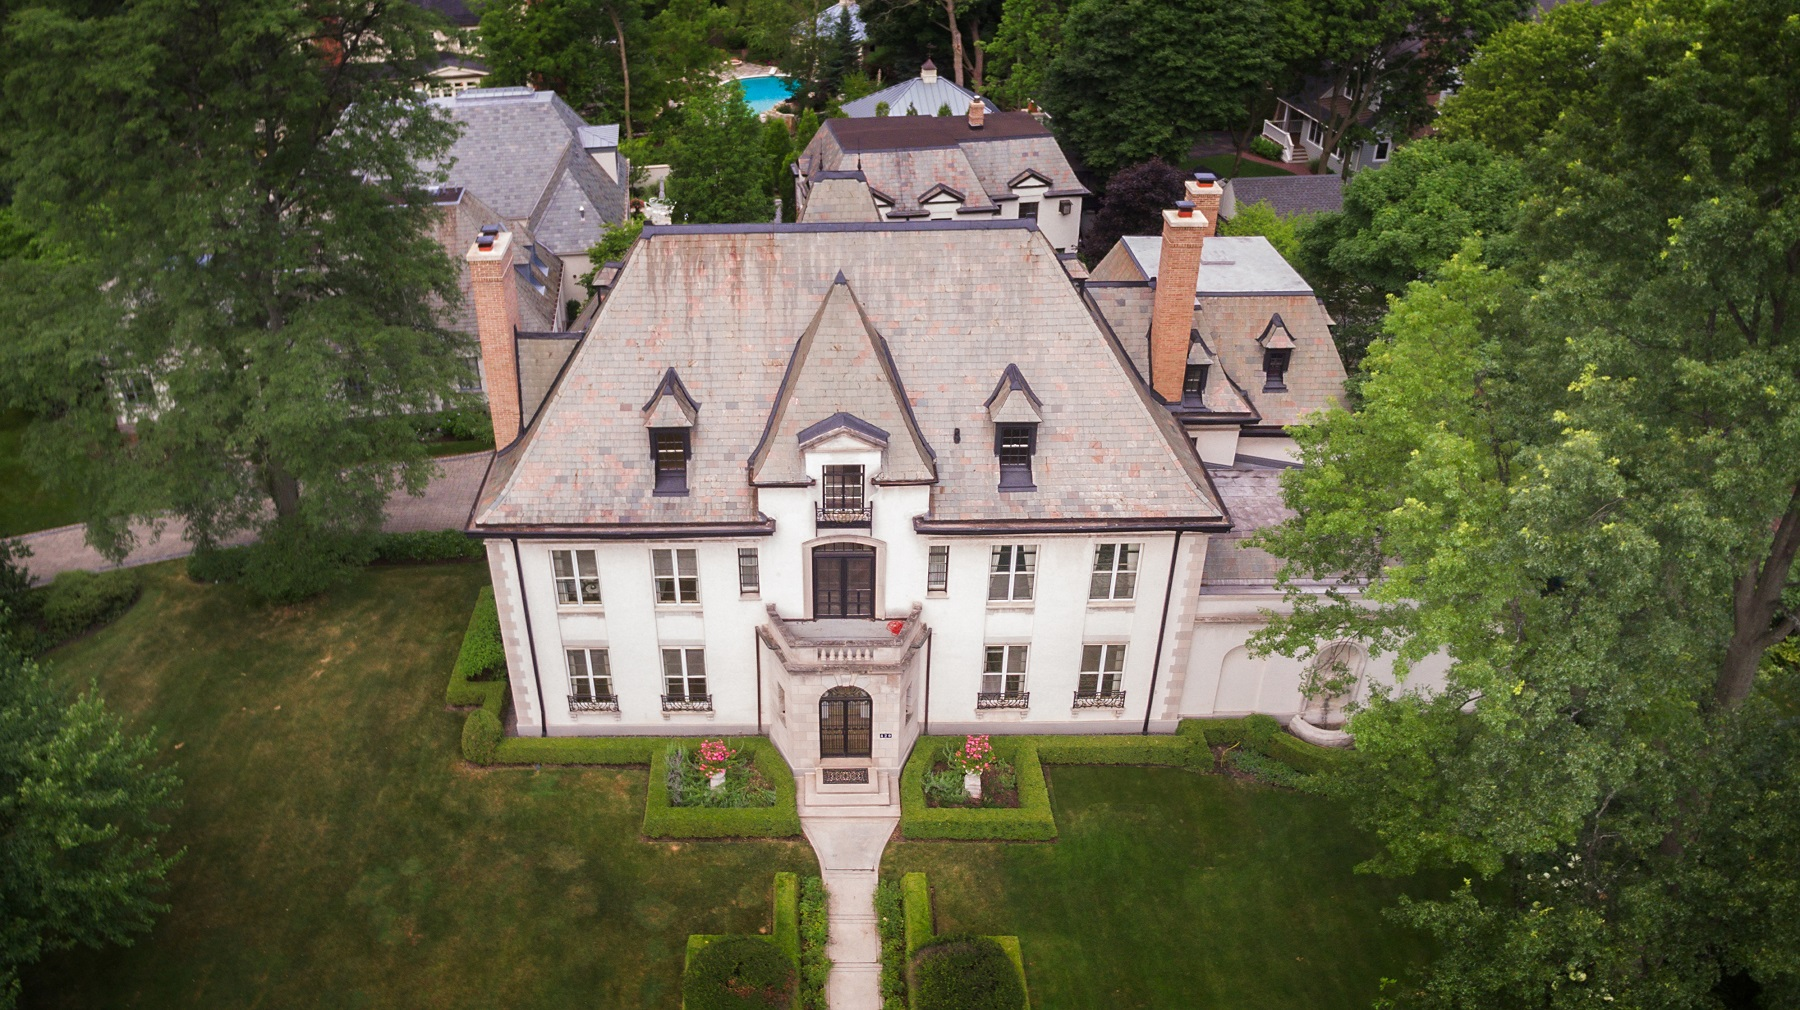 Single Family Home for Sale at 420 S. Park Avenue Hinsdale, Illinois, 60521 United States